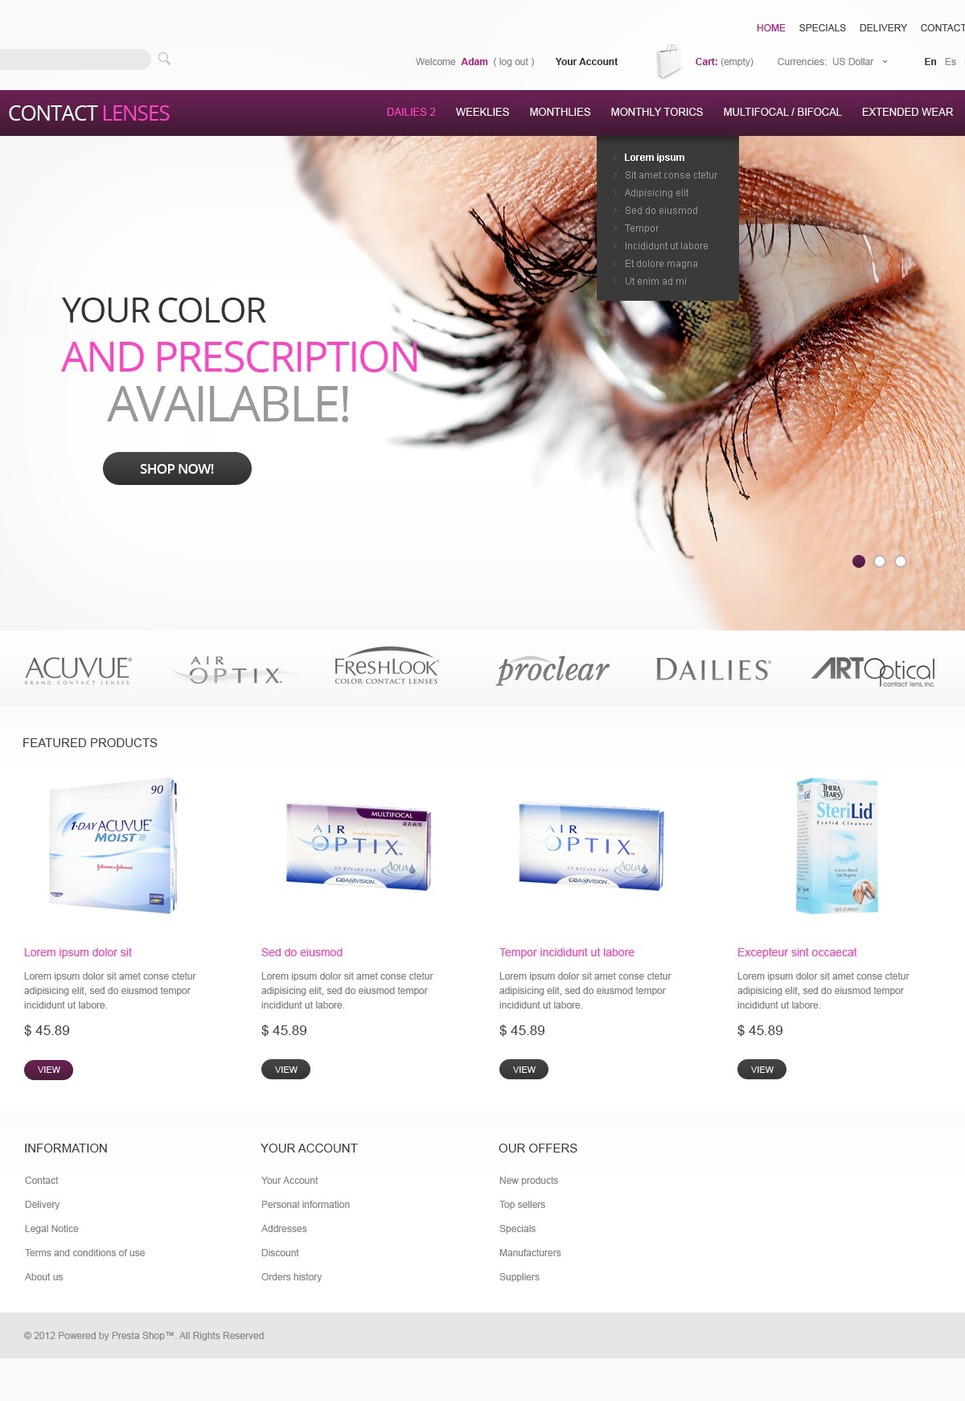 Contact Lenses PrestaShop Theme New Screenshots BIG